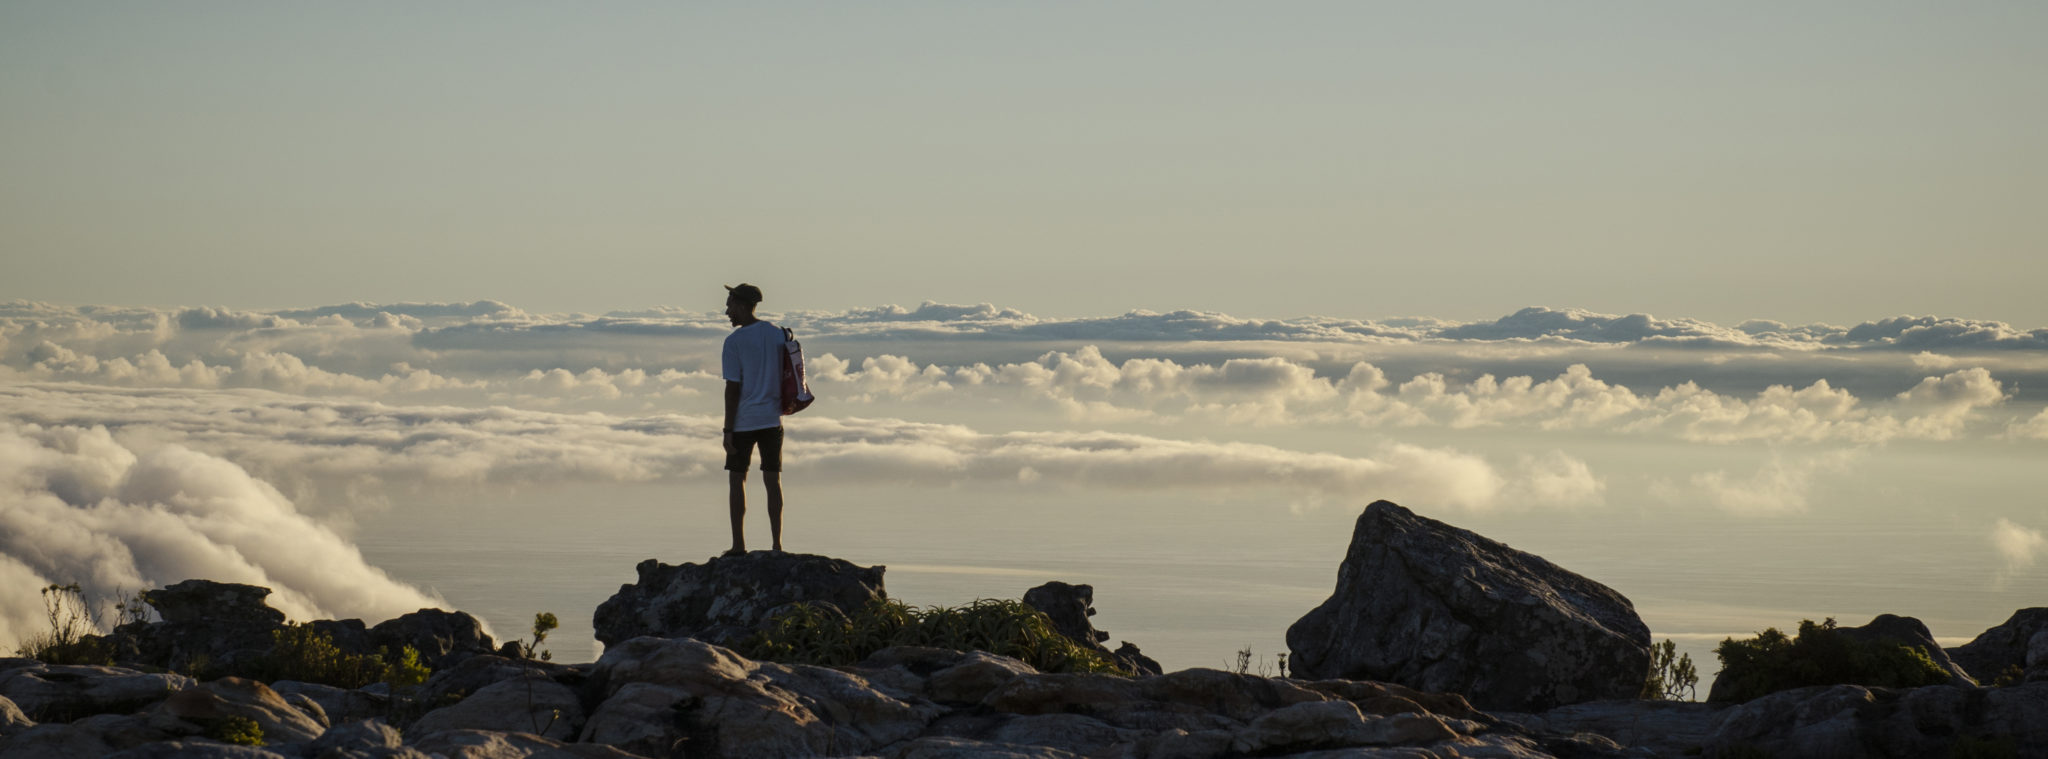 Things-to-do-in-South-Africa-Cape-Town-Tablemountain-Nationalpark-Slider